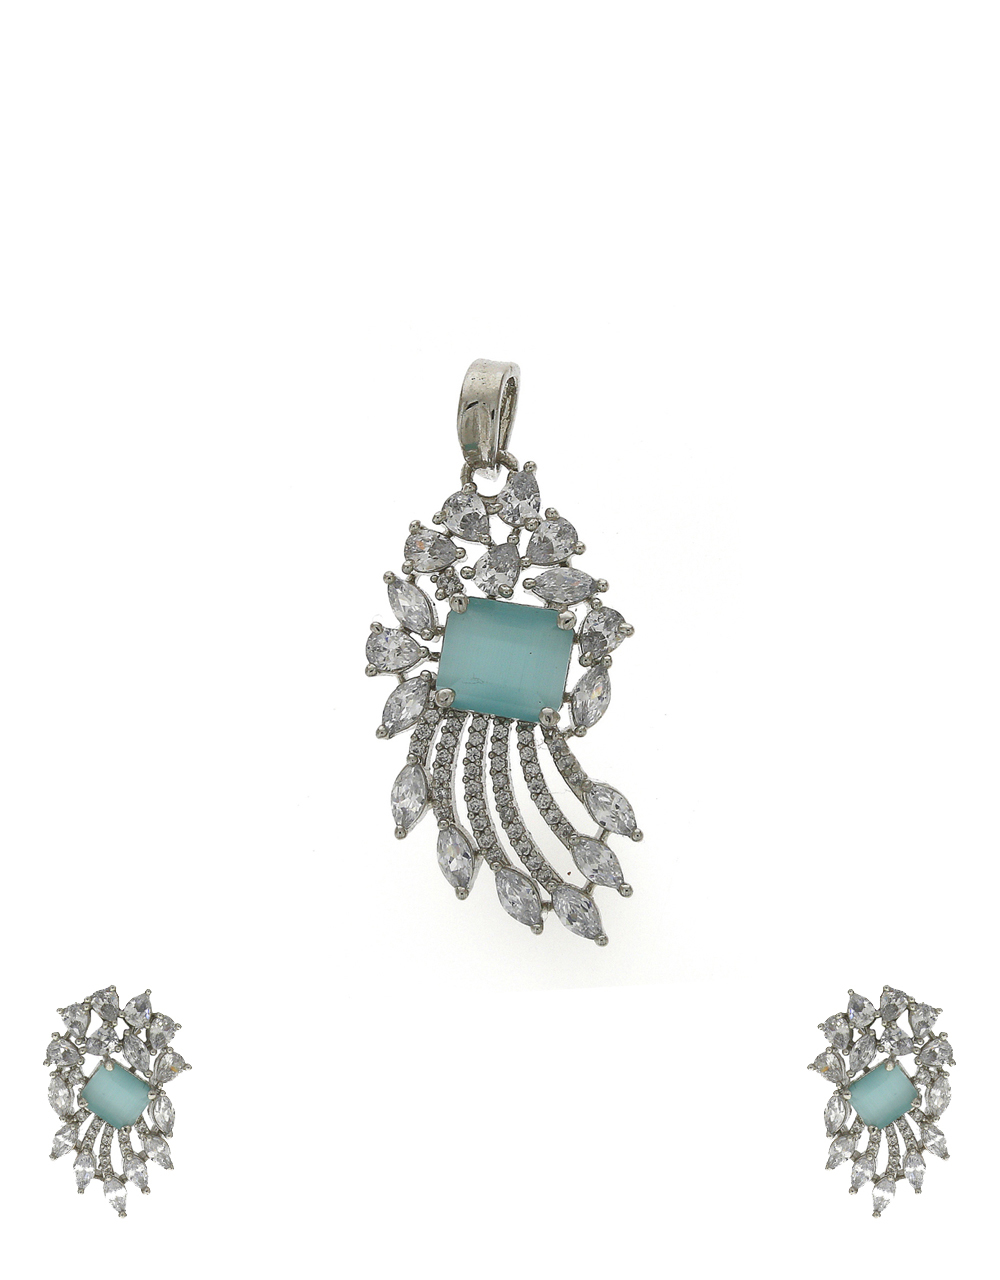 American diamond studded with pale green stone fancy pendant with earrings set